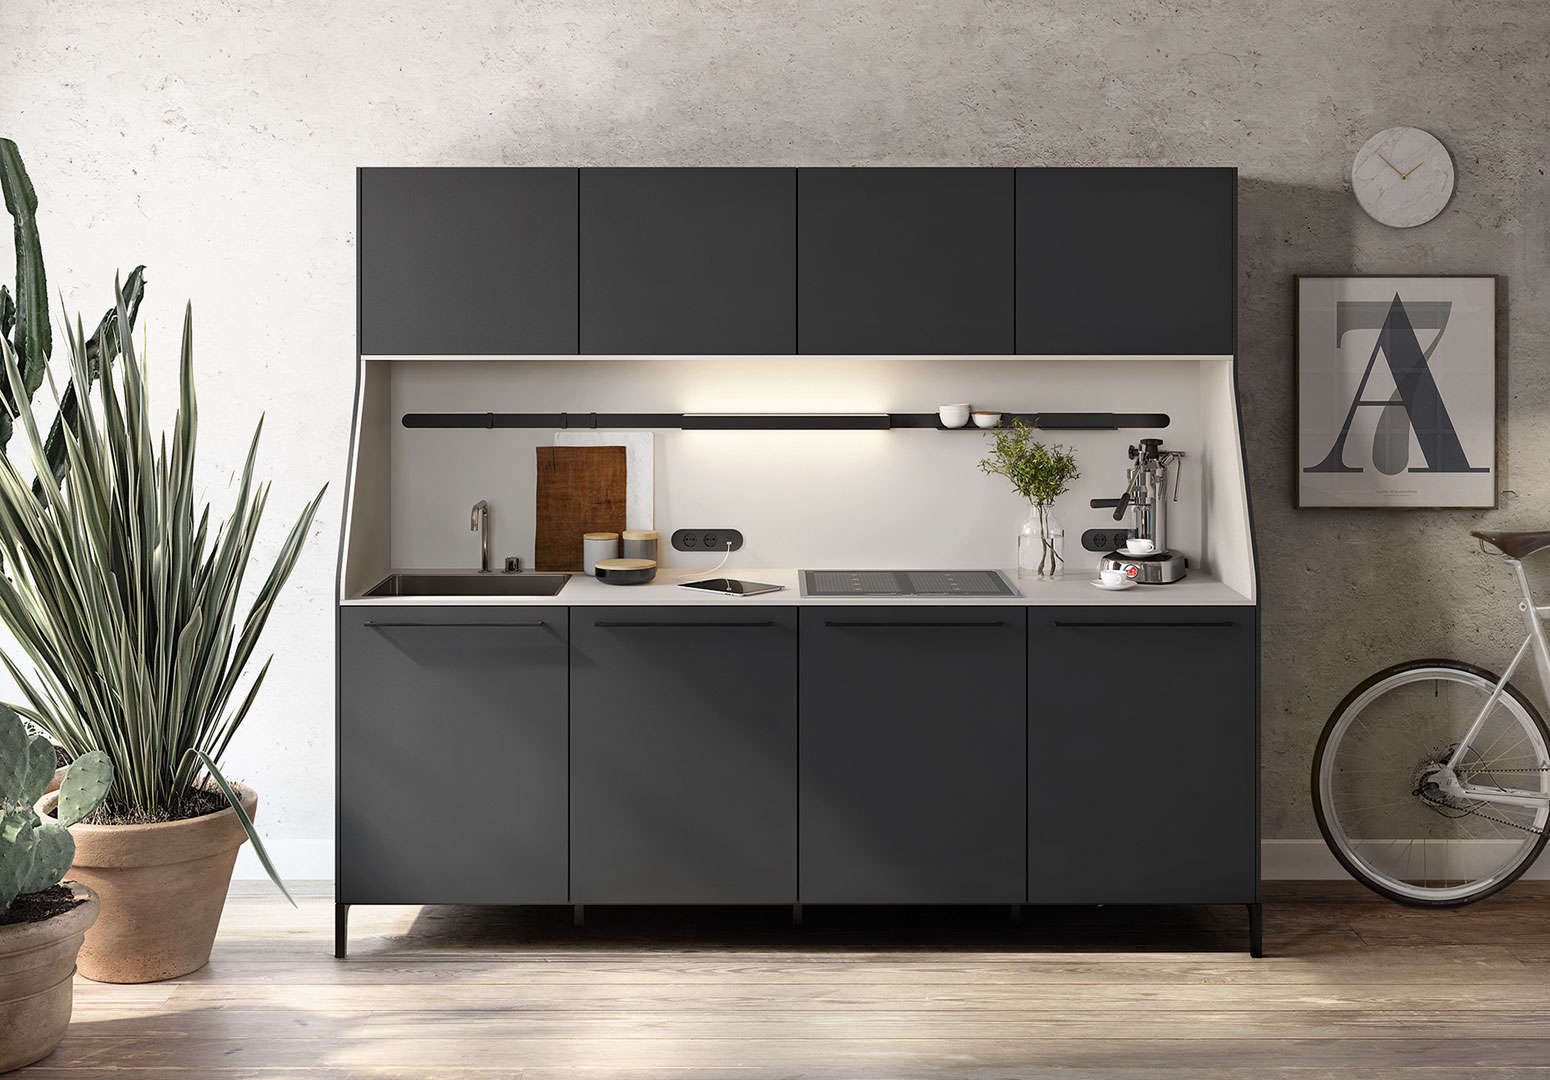 Kitchen Of The Week: A Kitchen Modeled After A Sideboard